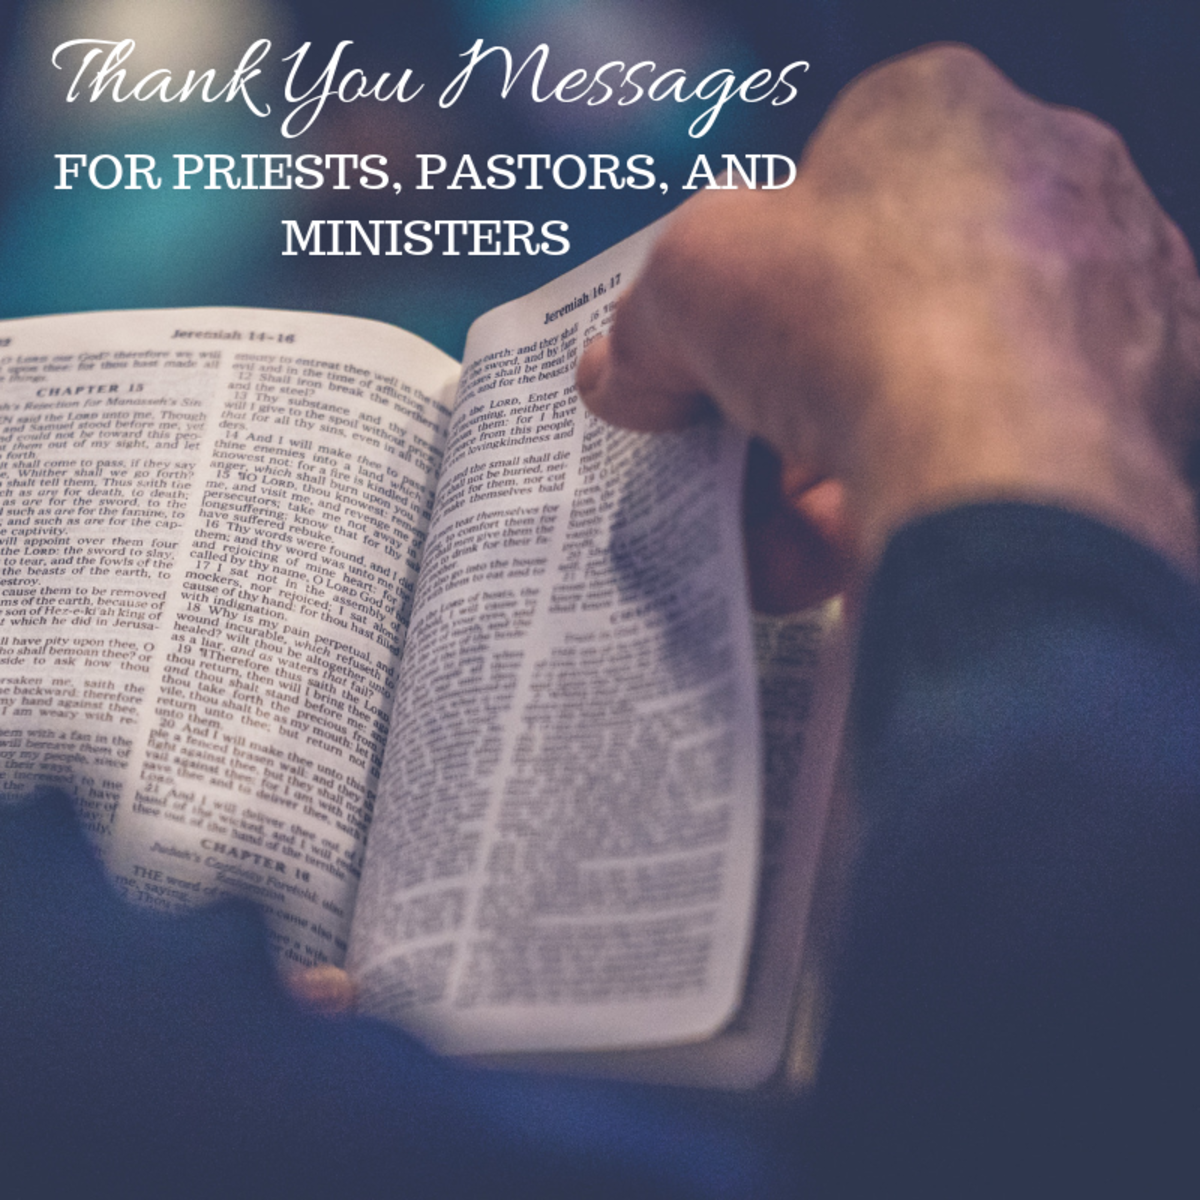 Thank You Note Examples for Pastors, Ministers, or Priests